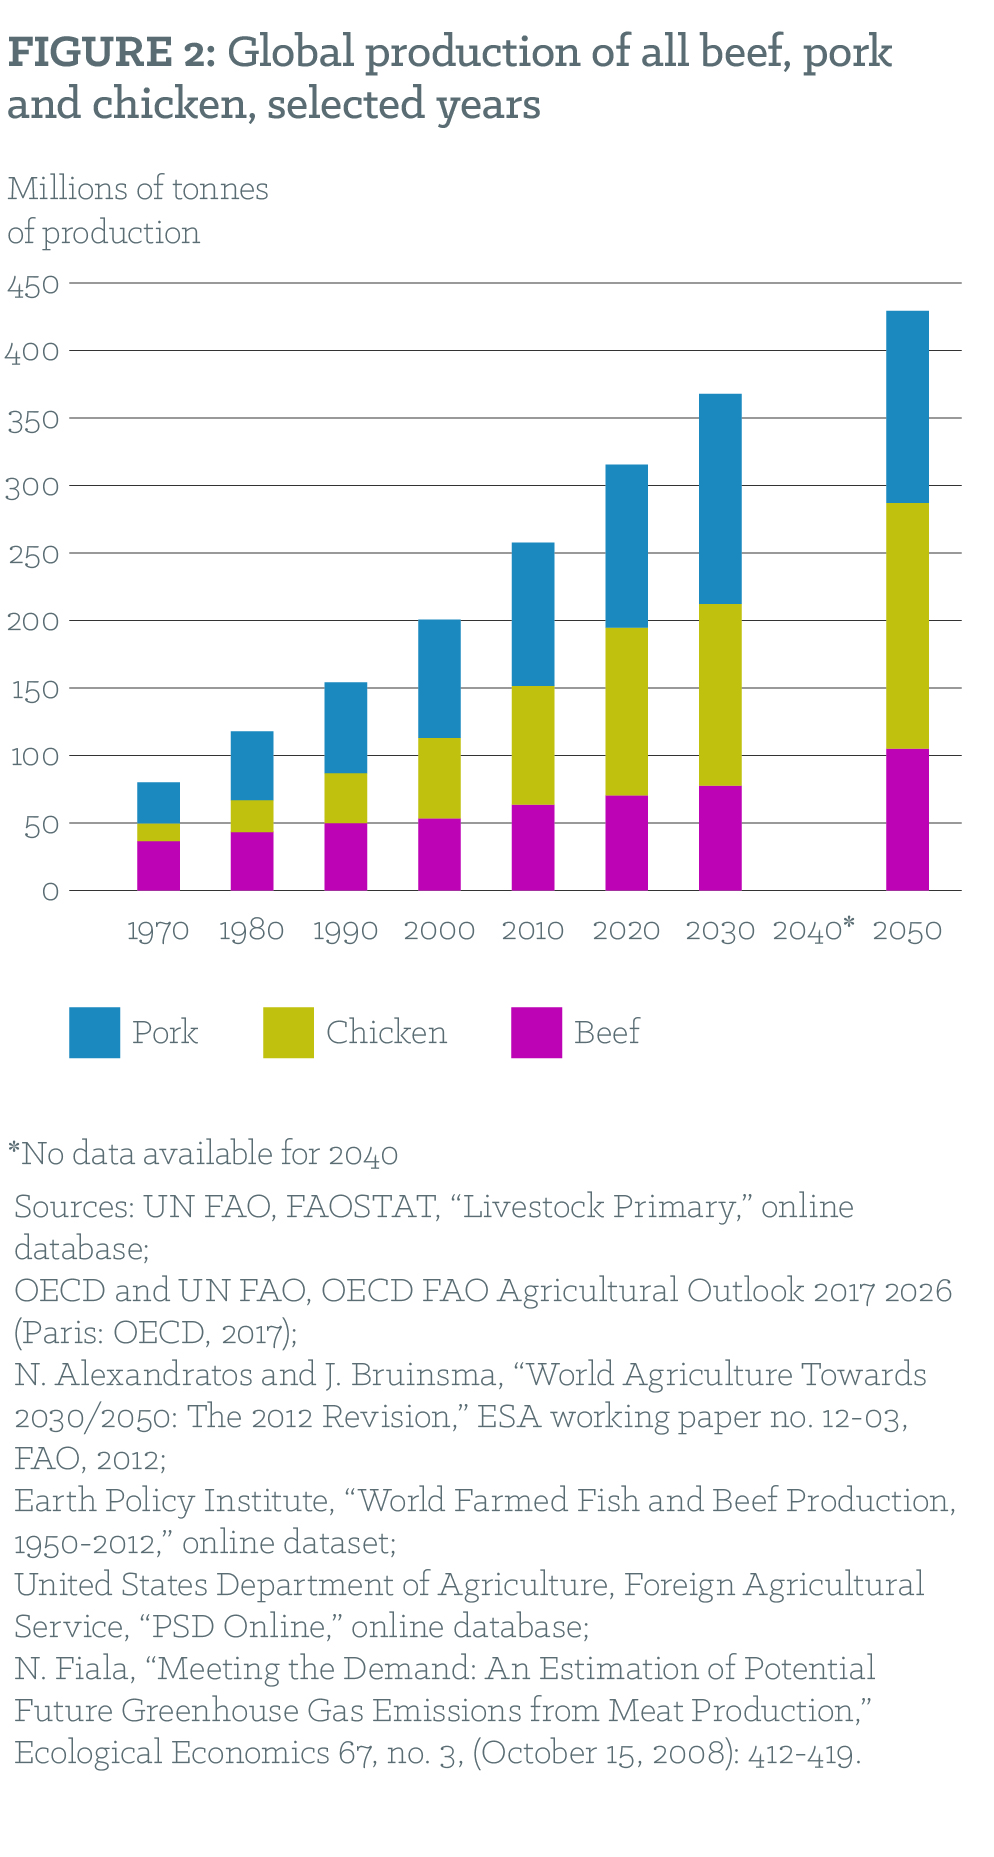 Figure 2: Global production of all beef, pork and chicken, selected years